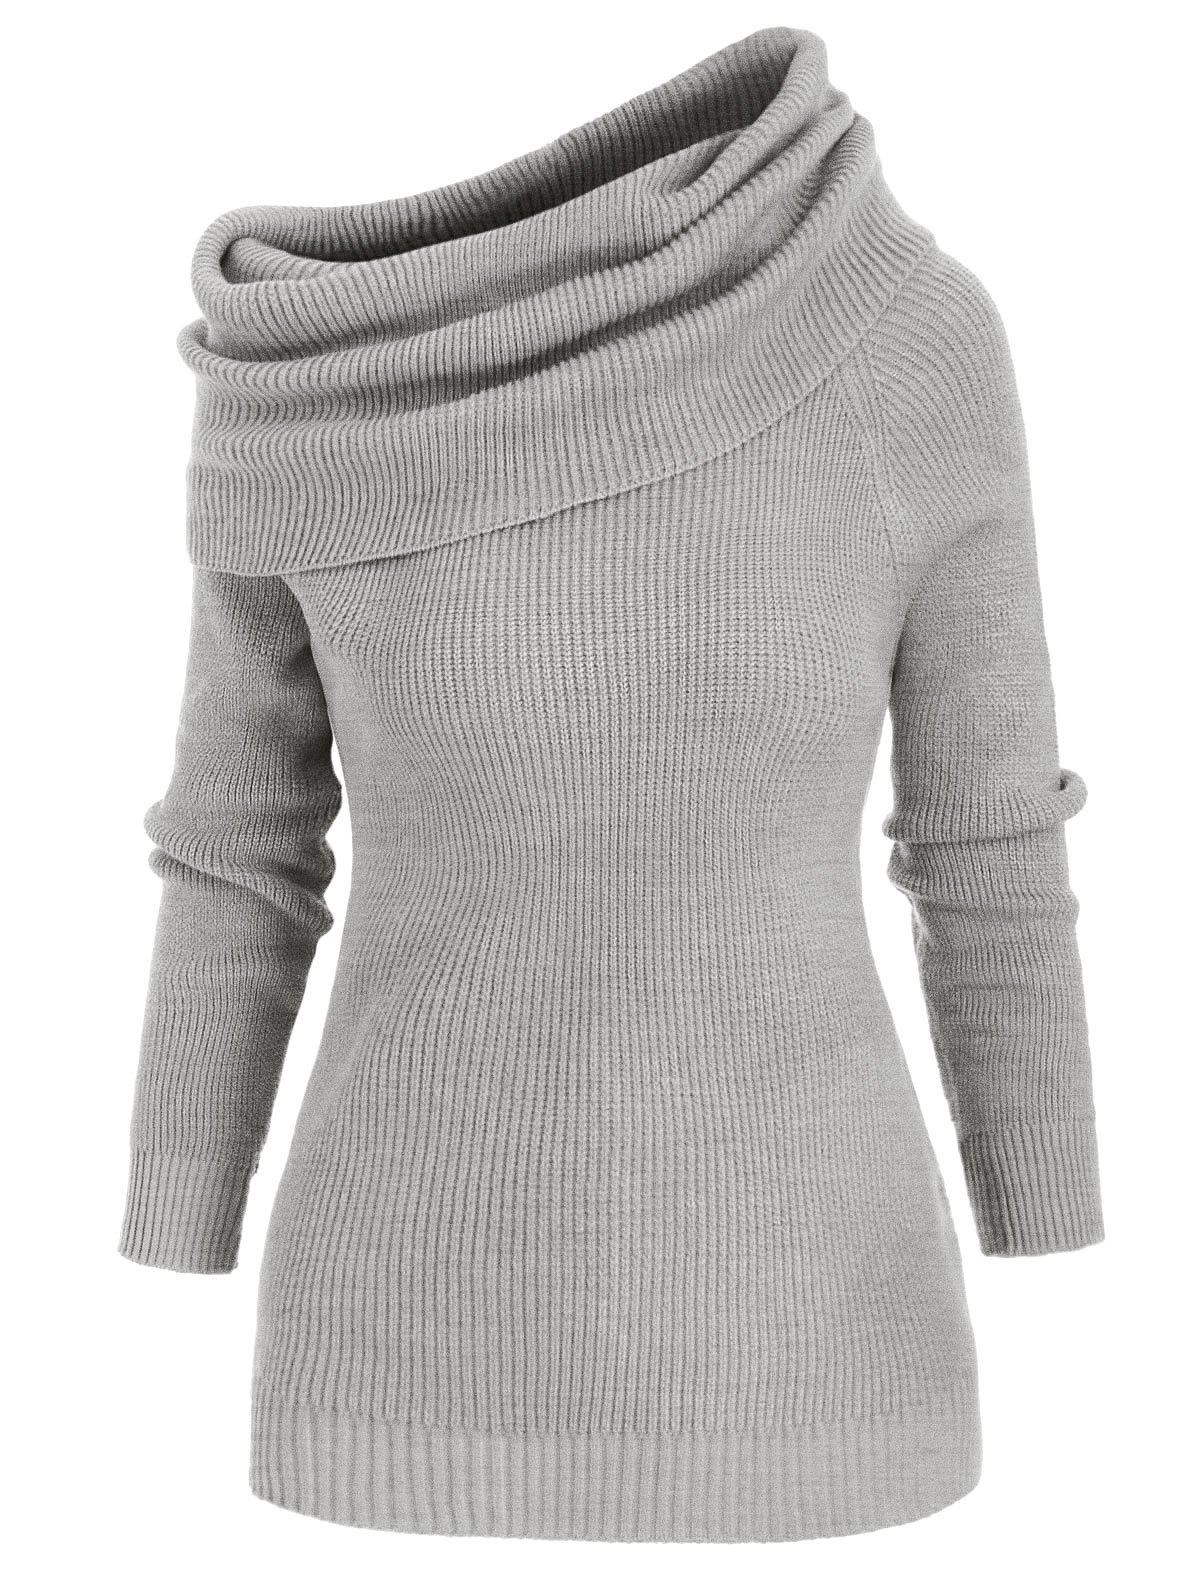 Affordable Convertible Foldover Pullover Sweater